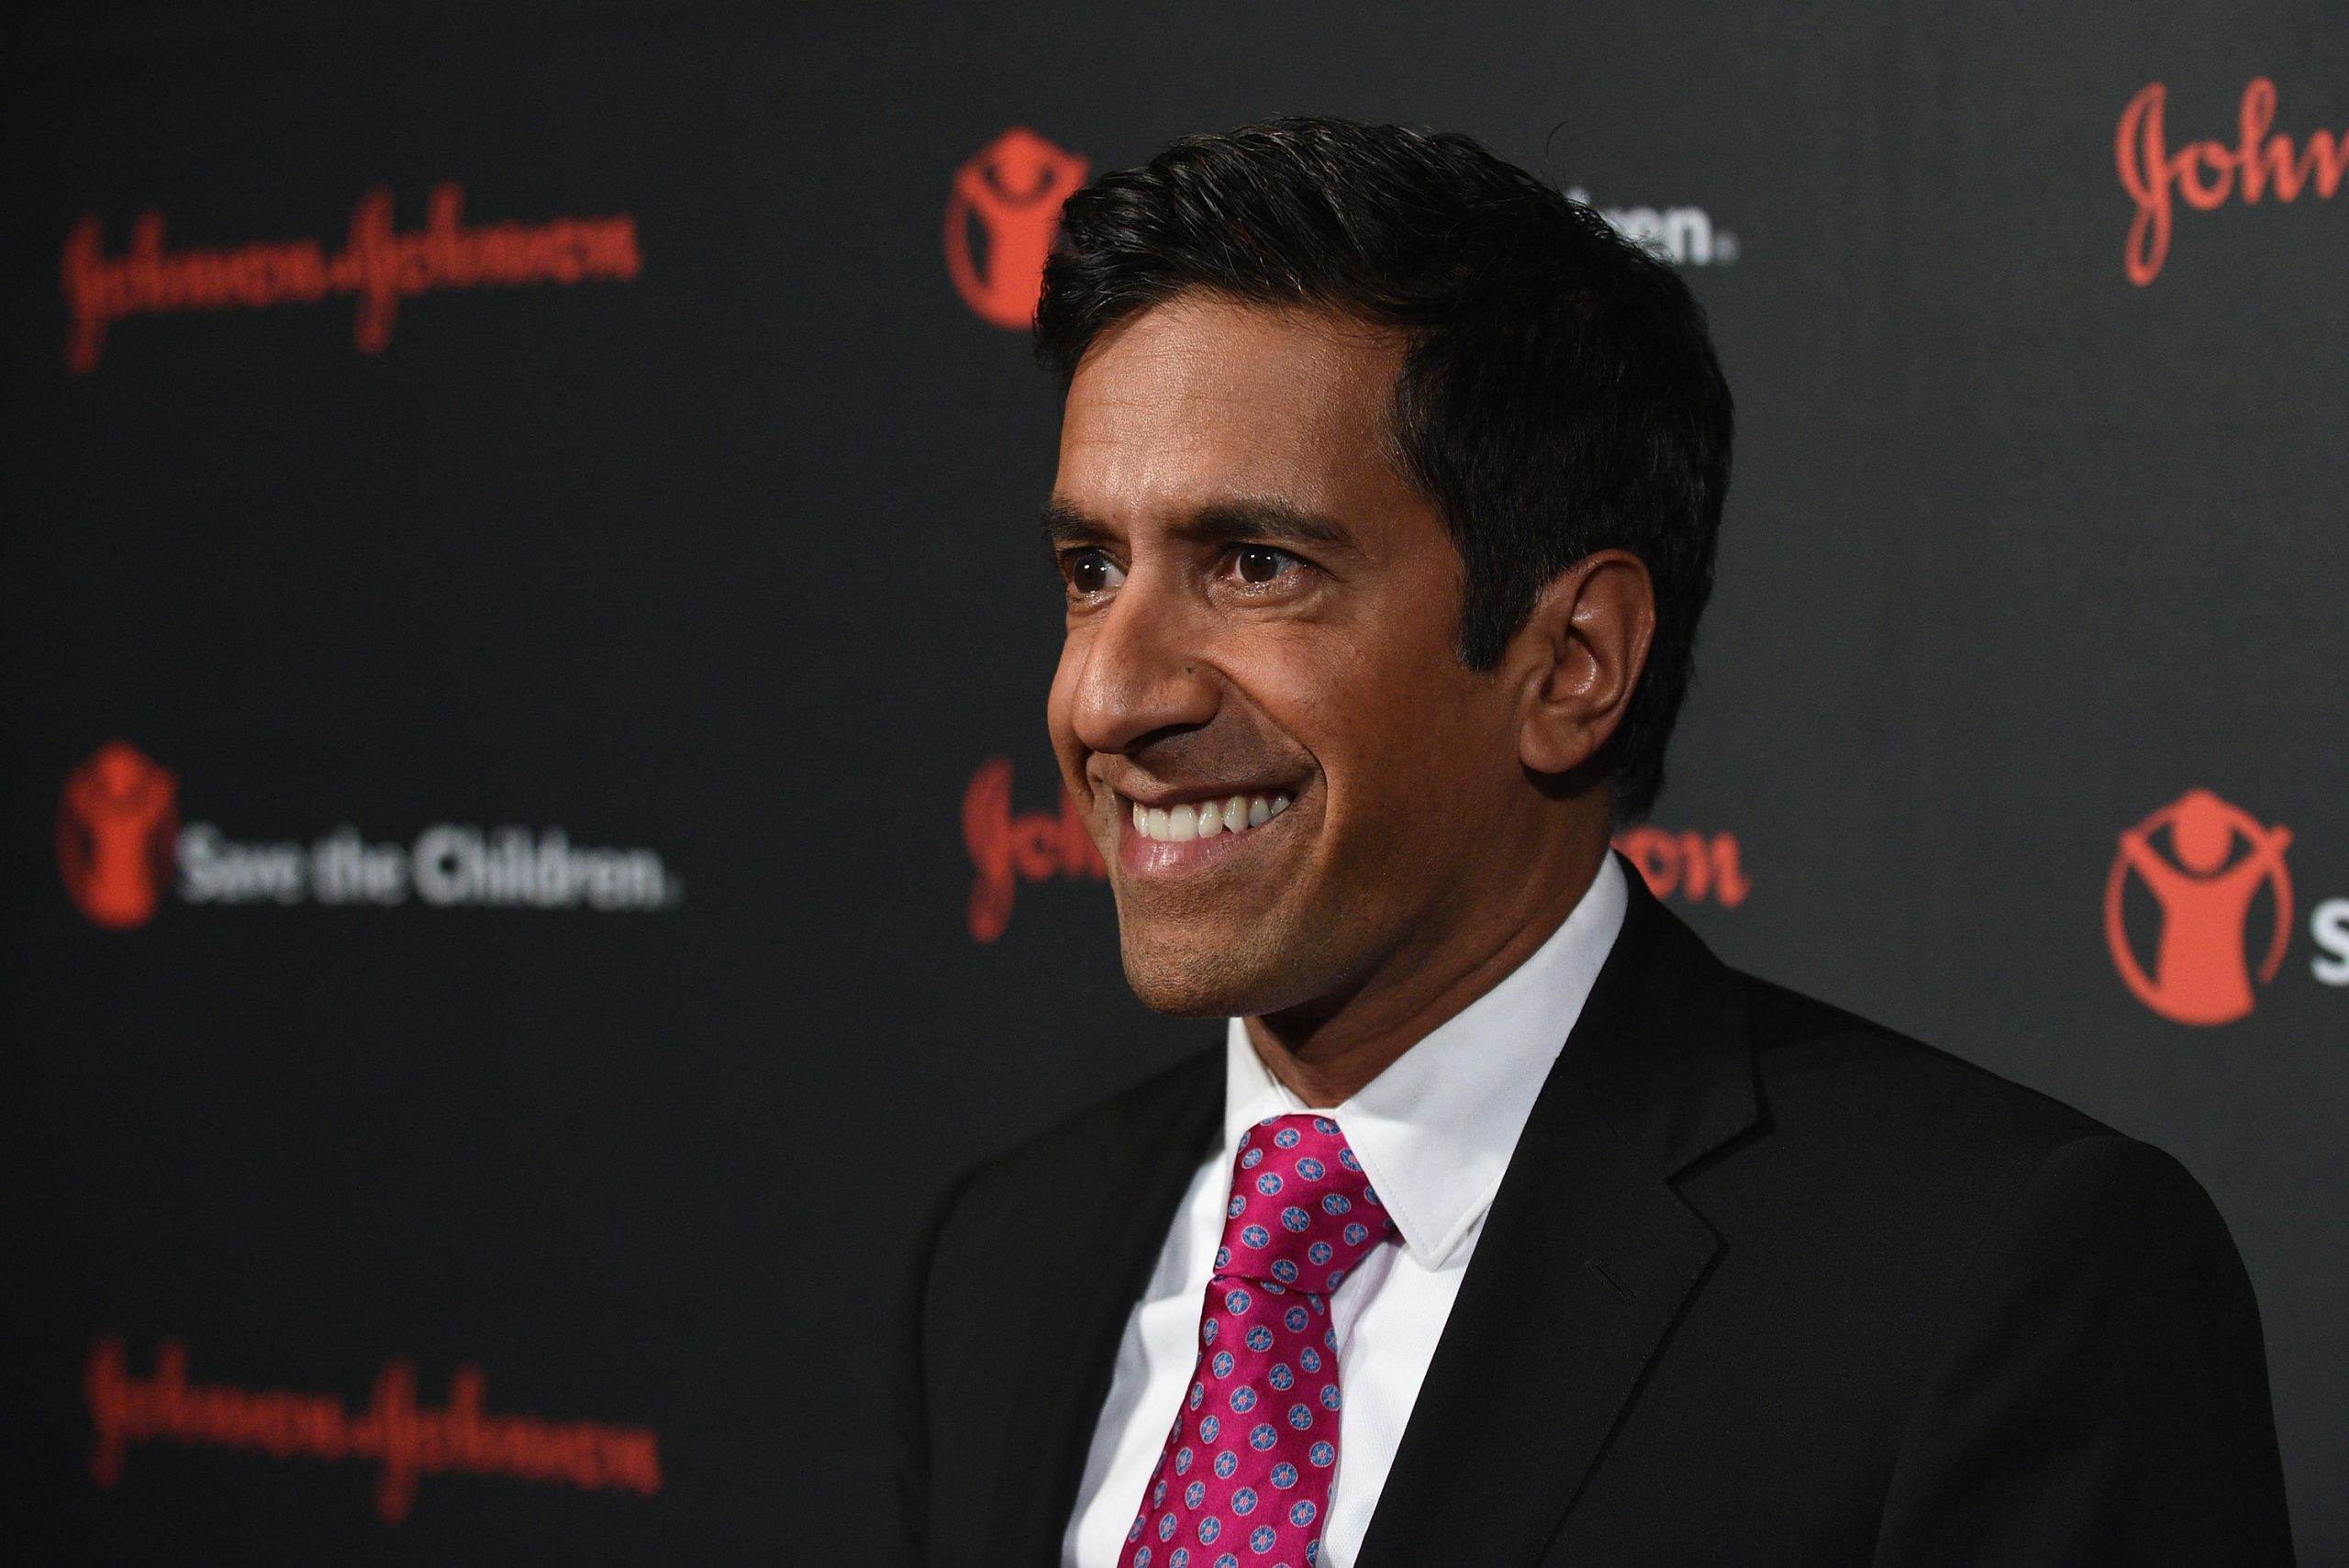 CNN's Dr. Sanjay Gupta smiles as he attends an event in 2015.